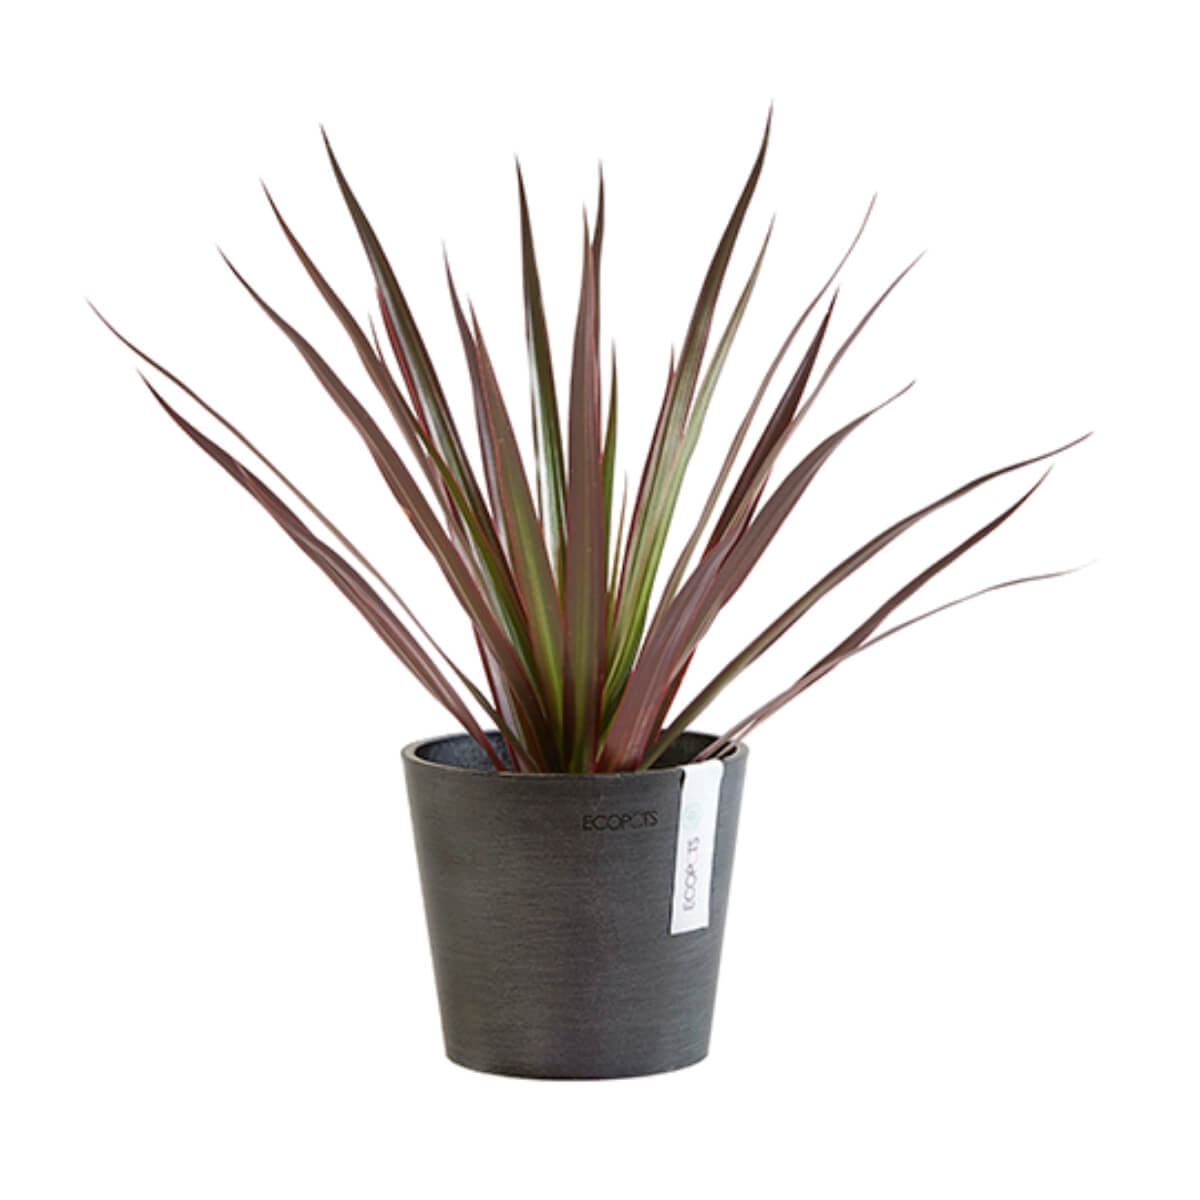 Medium Ecopots Amsterdam pot black with plant